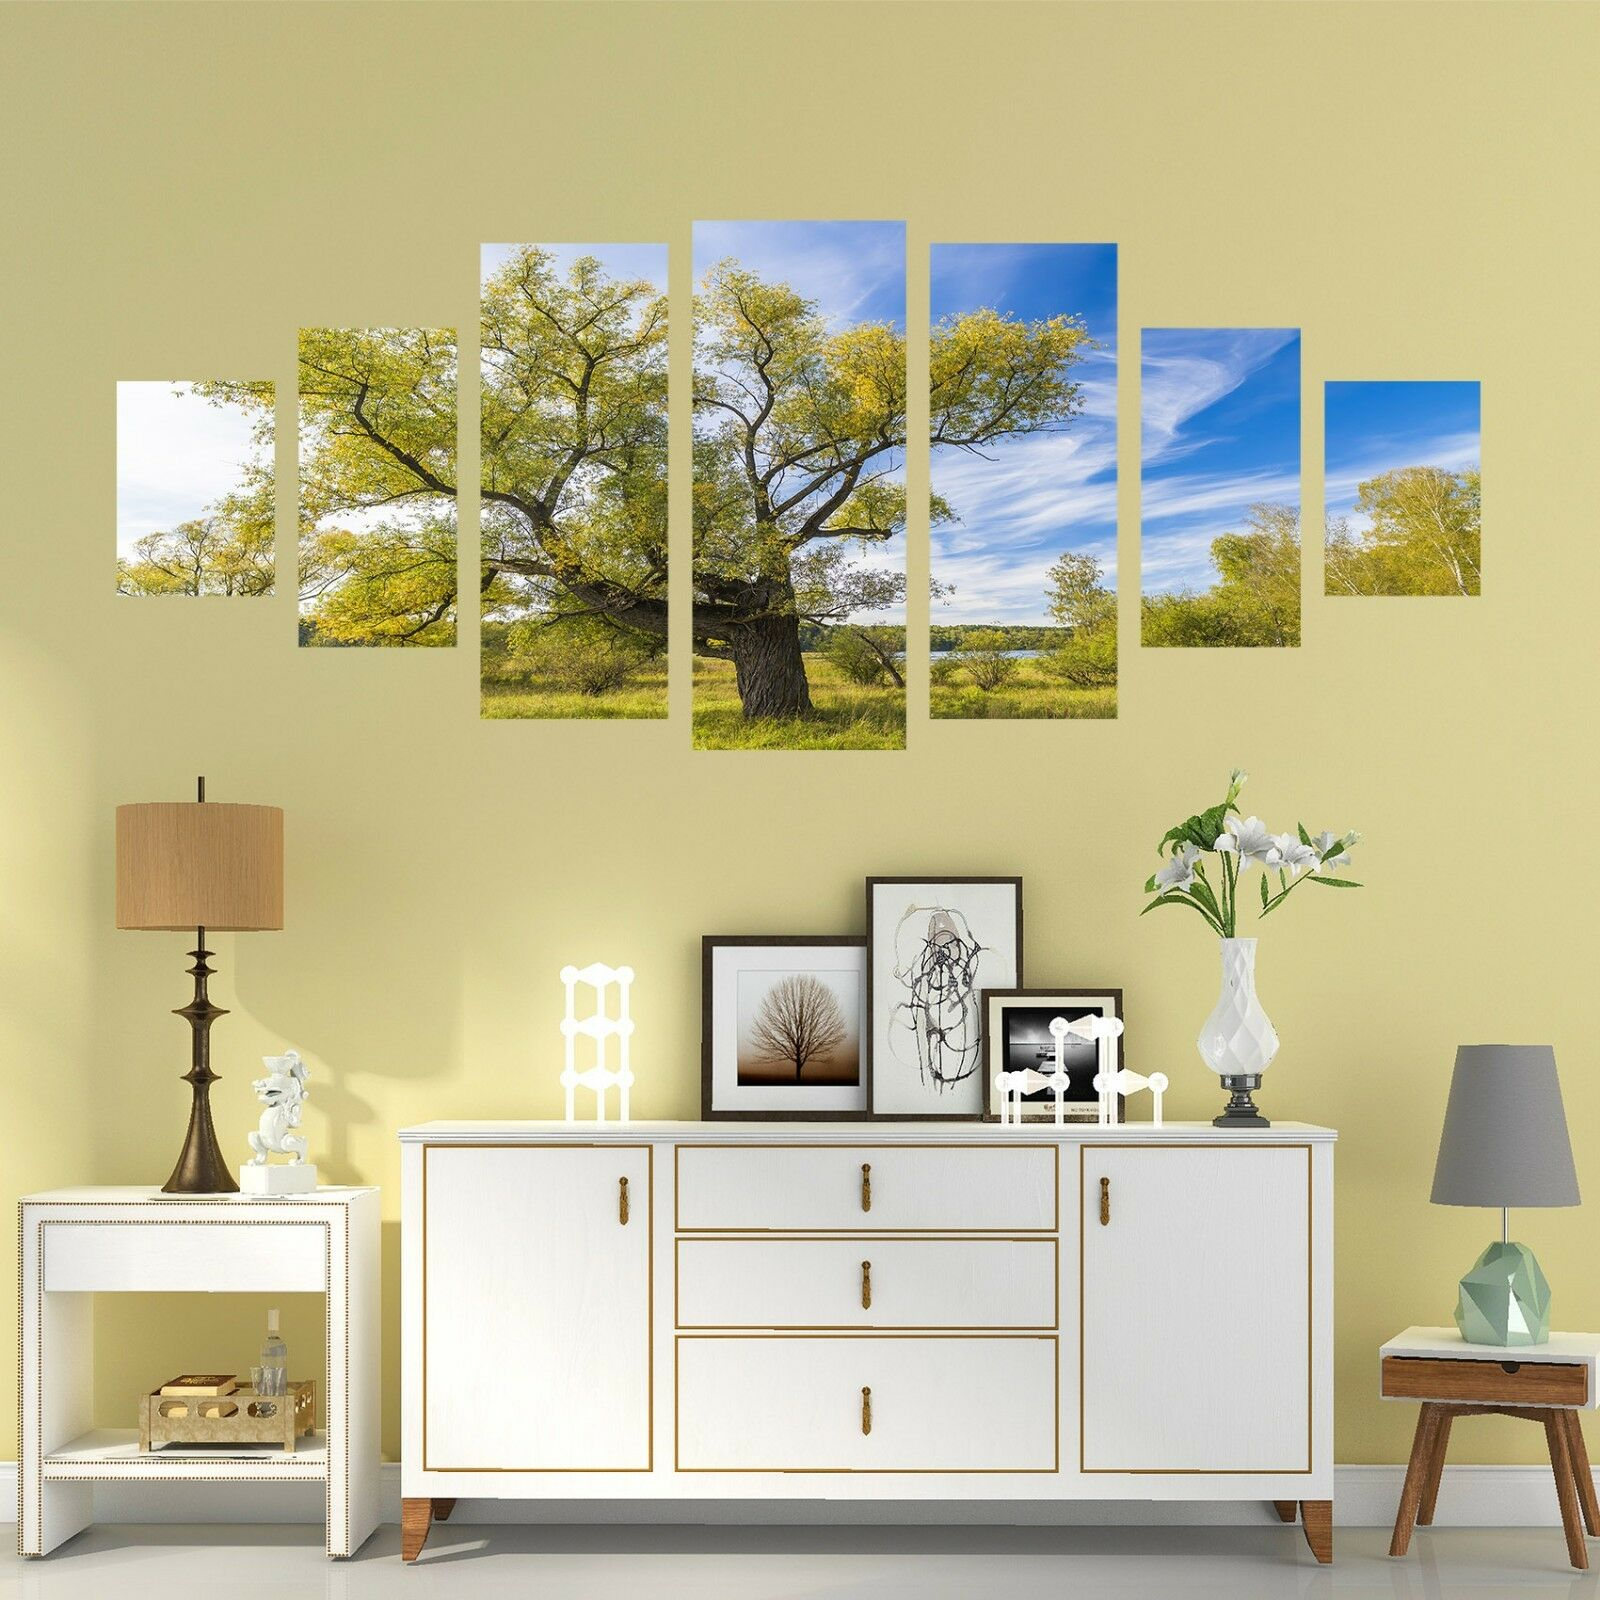 3D bluee Sky Tree 66 Unframed Print Wall Paper Decal Wall Deco Indoor AJ Wall